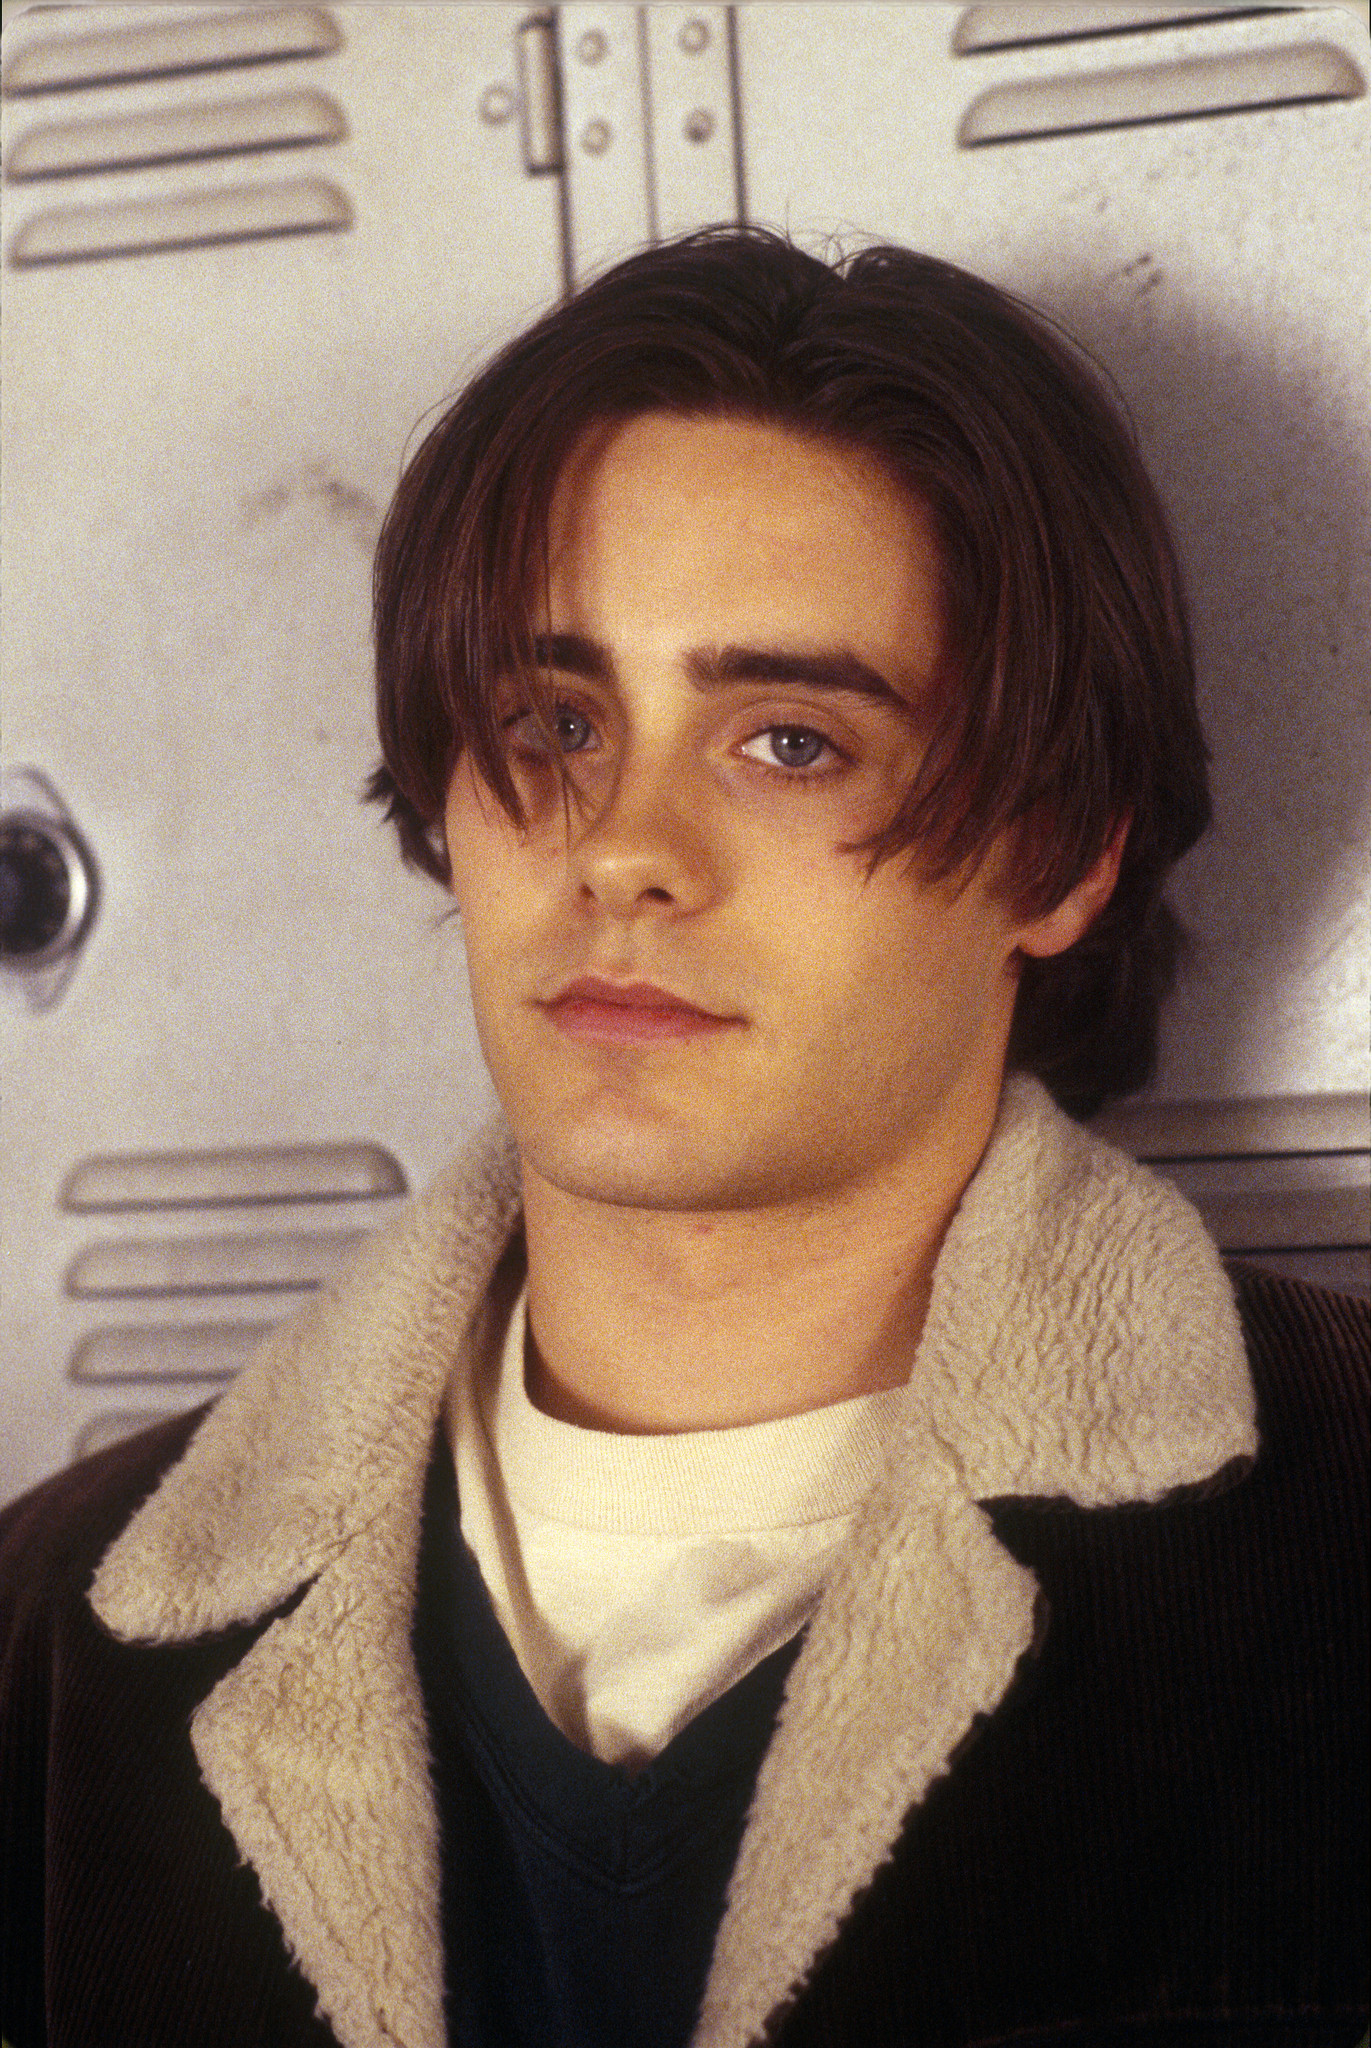 Jared Leto in My So-Called Life (1994)